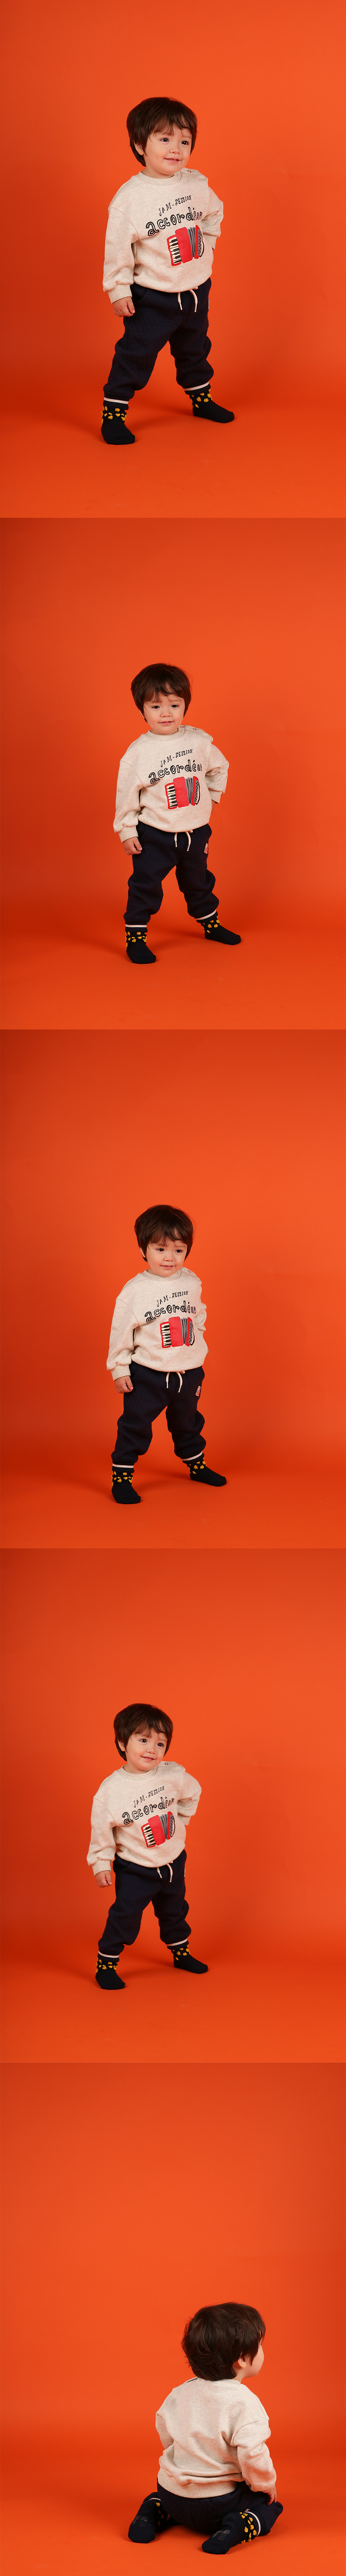 Accordion baby sweatshirt 상세 이미지